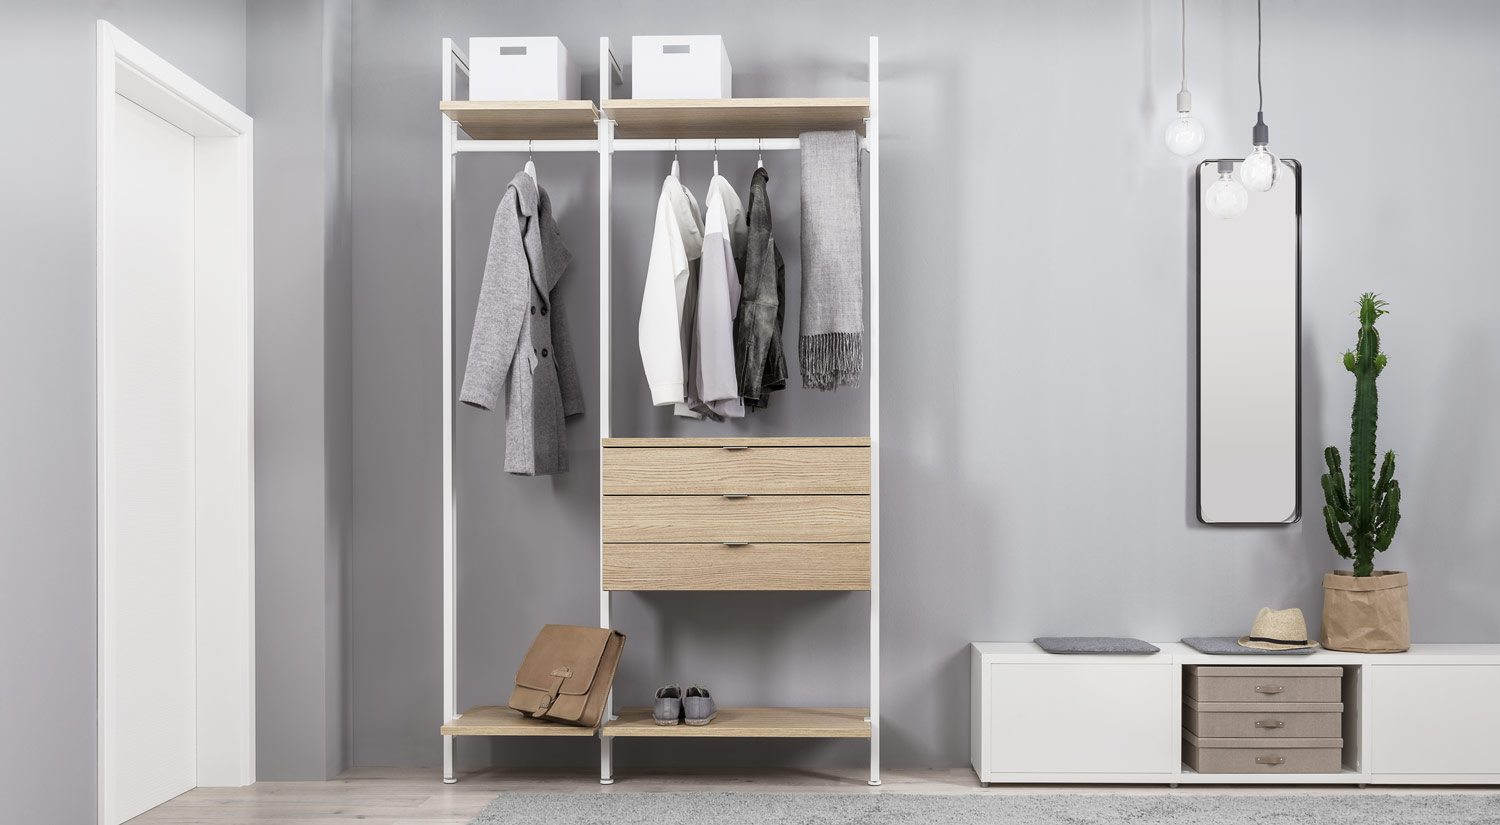 Clothes rack - wardrobe CLOS-IT shelving system in the hallway